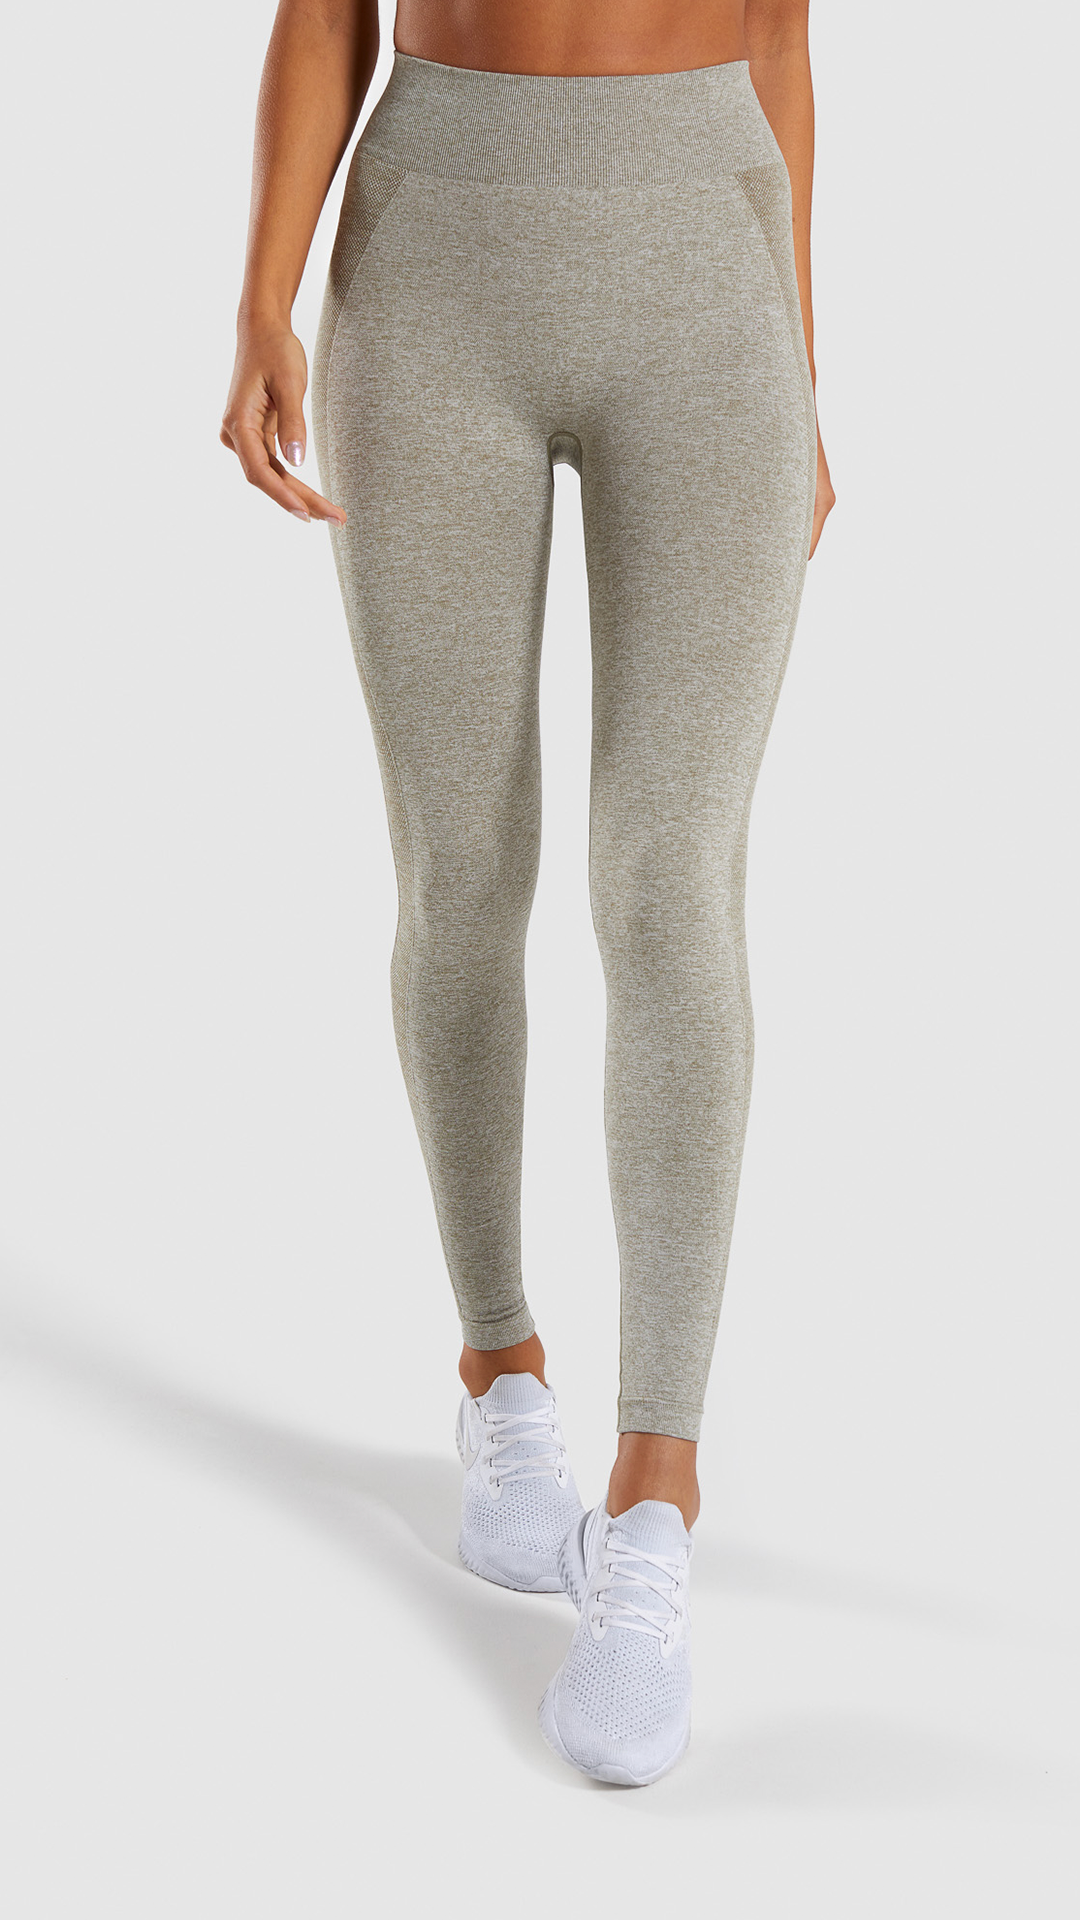 525d81ca44ea3 The High Waisted Flex Leggings. A classic style, reinvented! #Gymshark #Gym  #Sweat #Train #Perform #Seamless #Exercise #Strength #Strong #Power  #Fitness ...